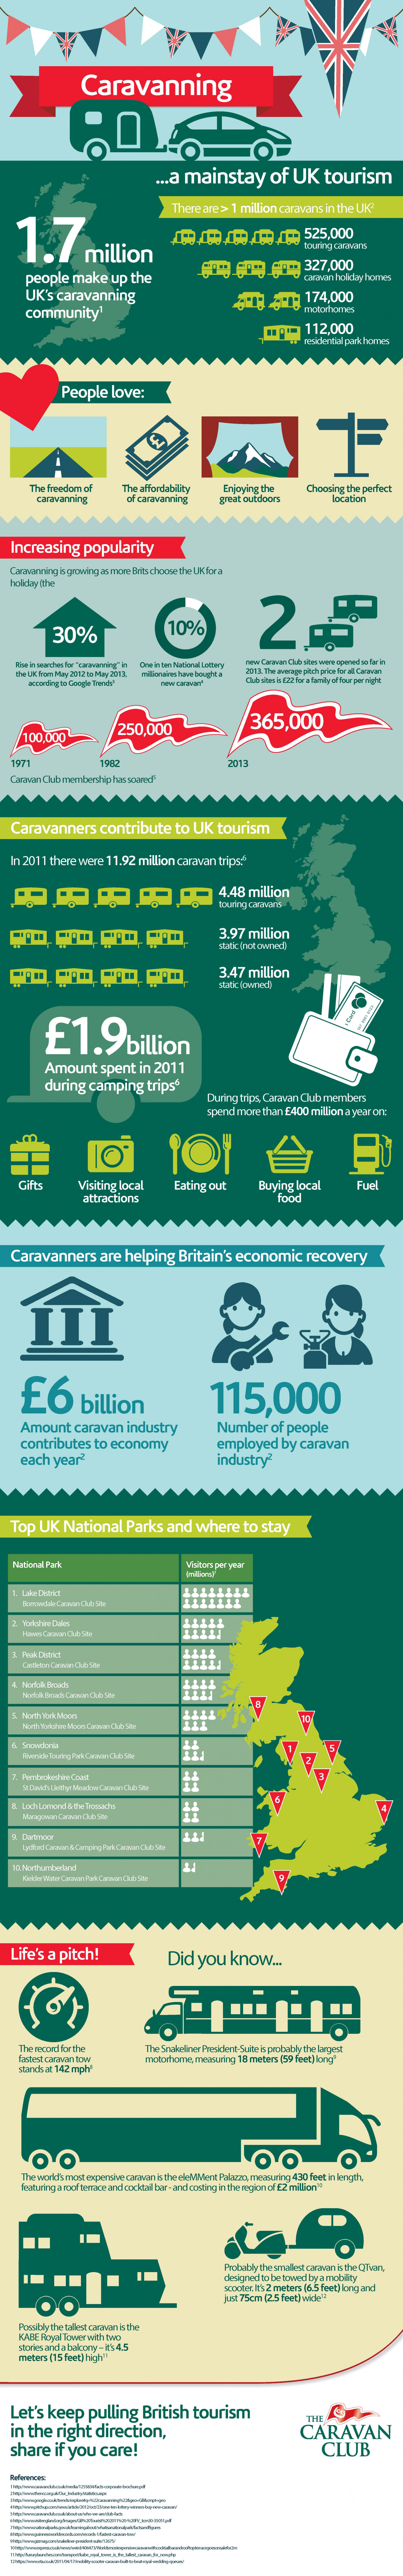 Caravanning - A Mainstay of UK Tourism Infographic